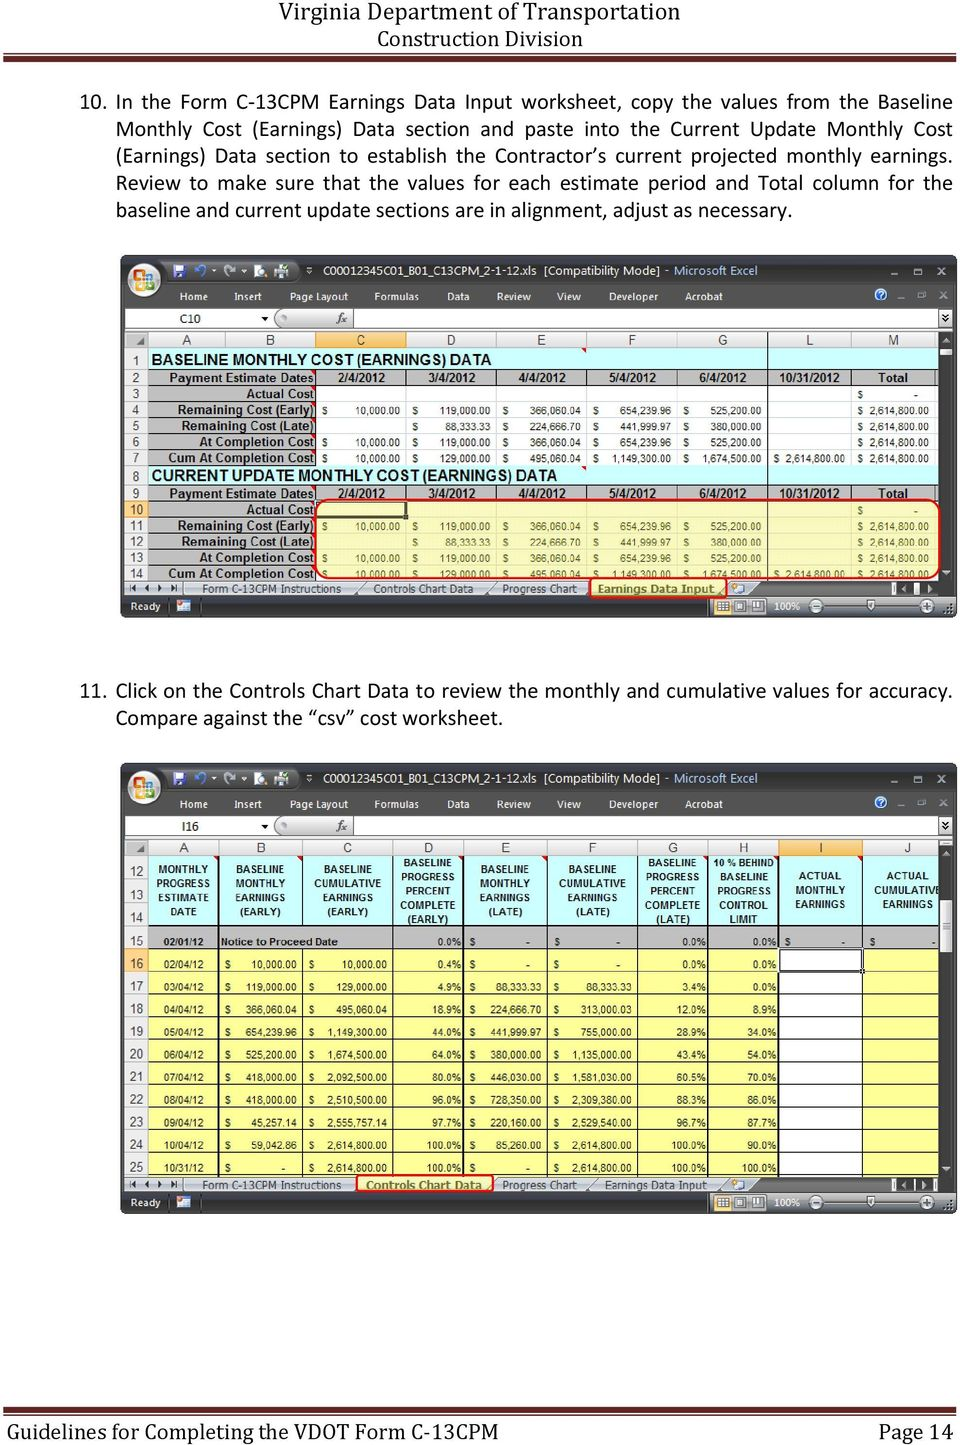 Review to make sure that the values for each estimate period and Total column for the baseline and current update sections are in alignment, adjust as